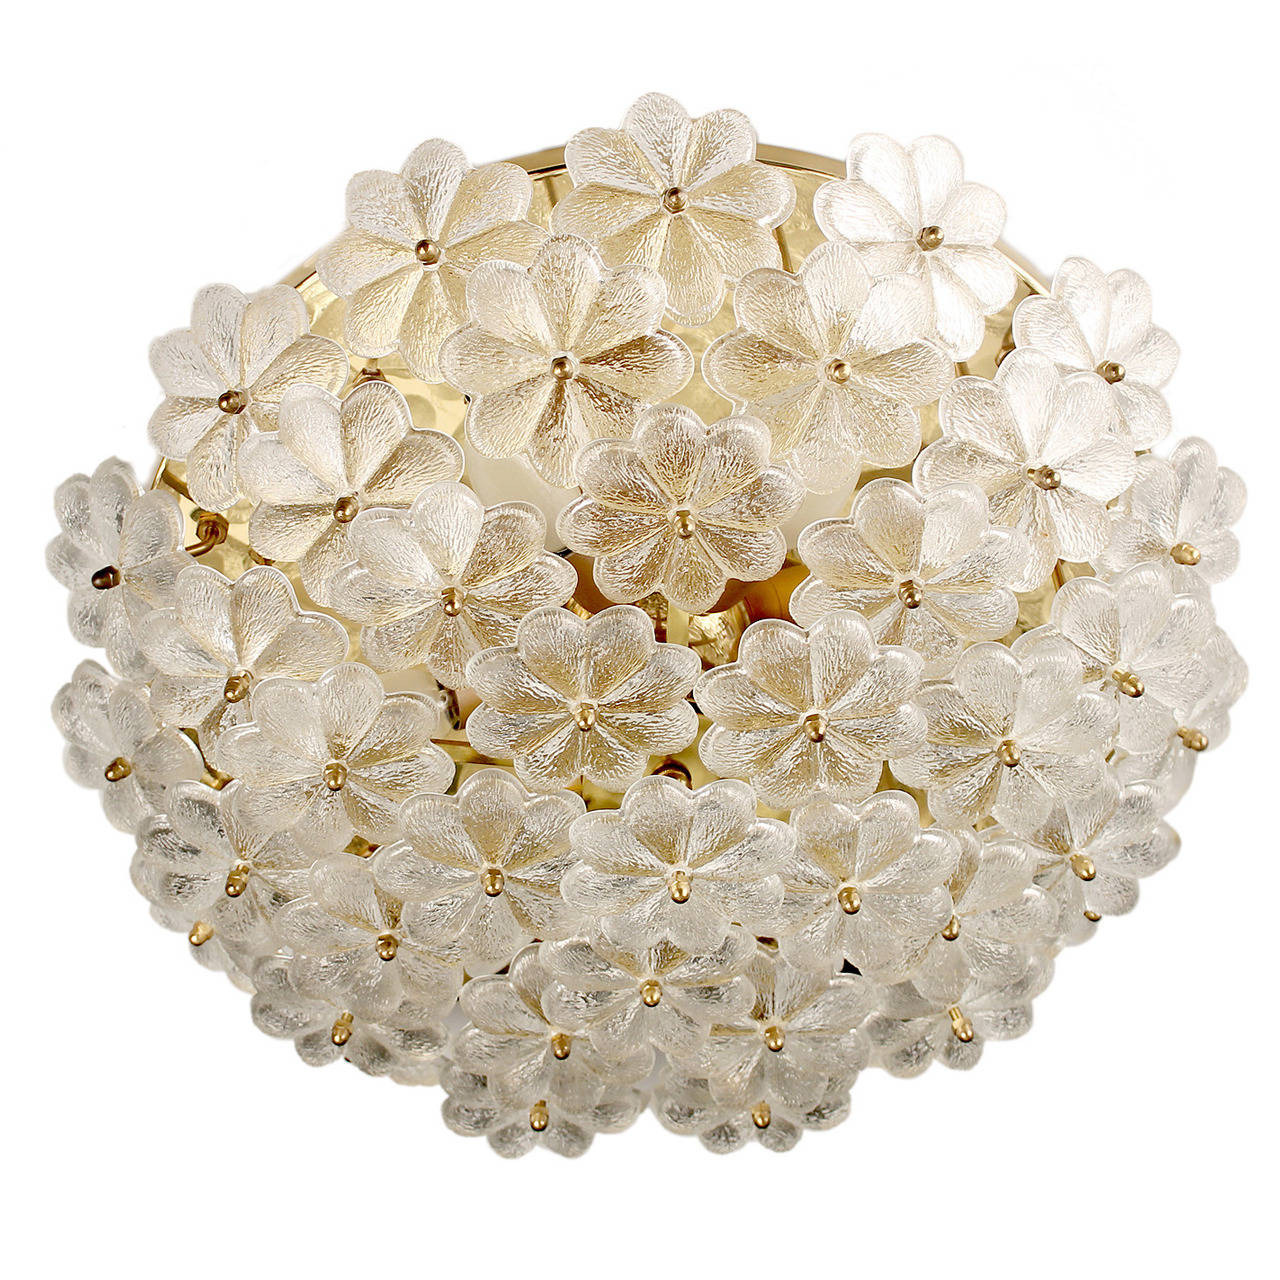 Large murano glass flowers flush mount antique lighting ceiling large murano glass flowers flush mount antique lighting ceiling light brass 1 arubaitofo Gallery